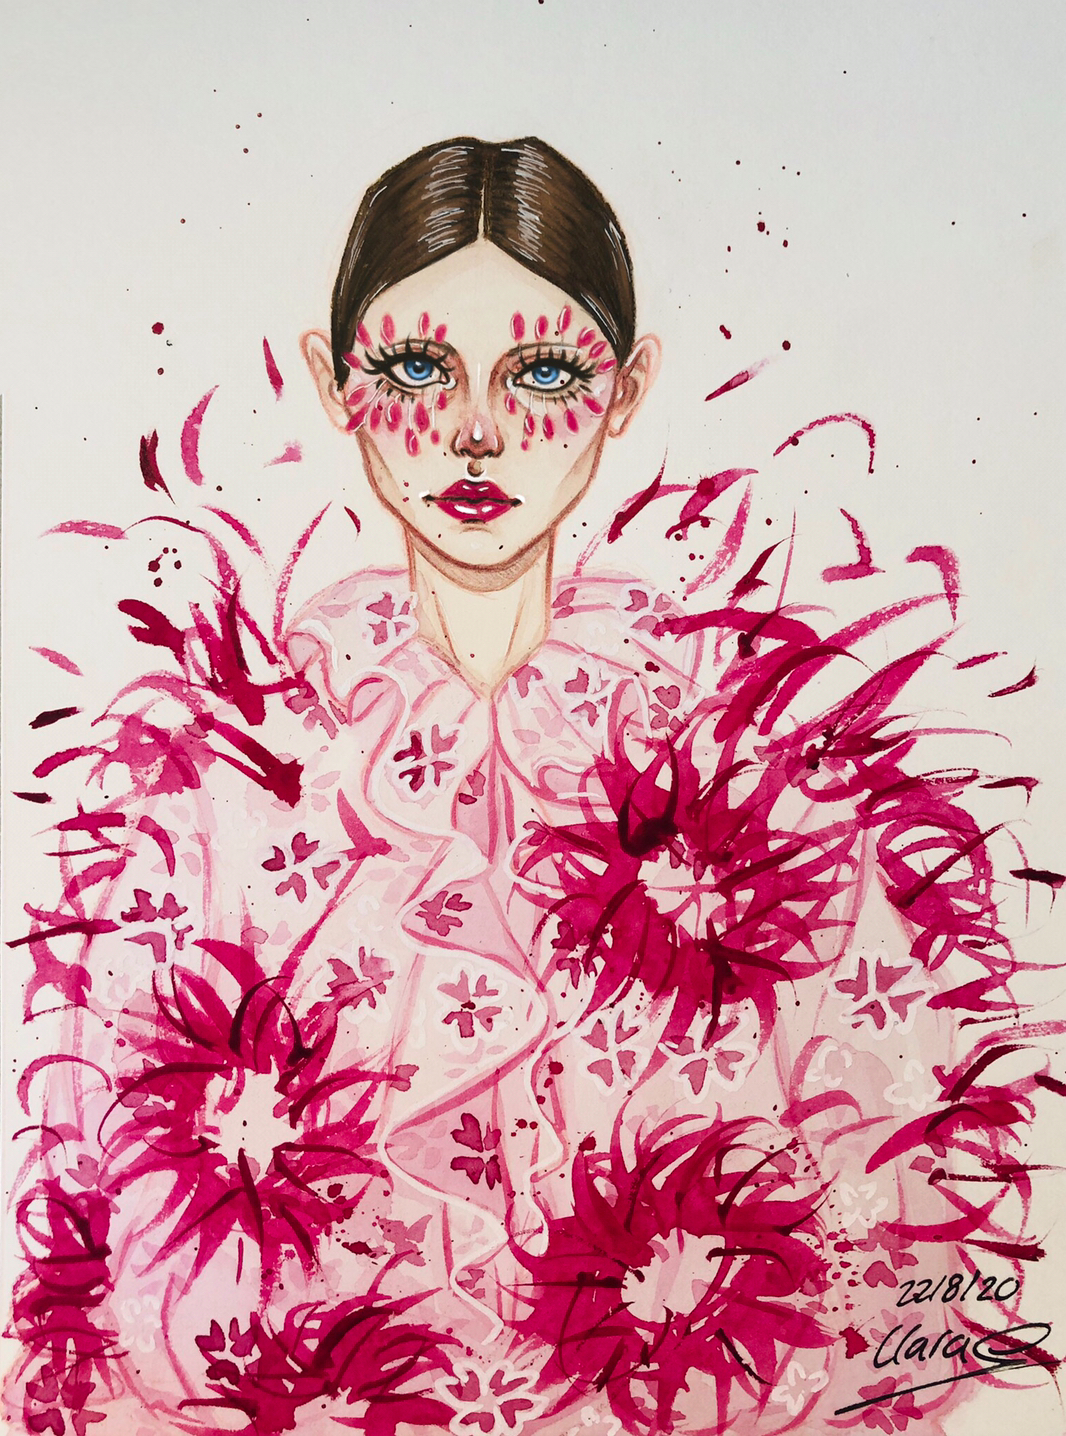 An illustration of a model wearing a jacket made out of red and dark pink flowers